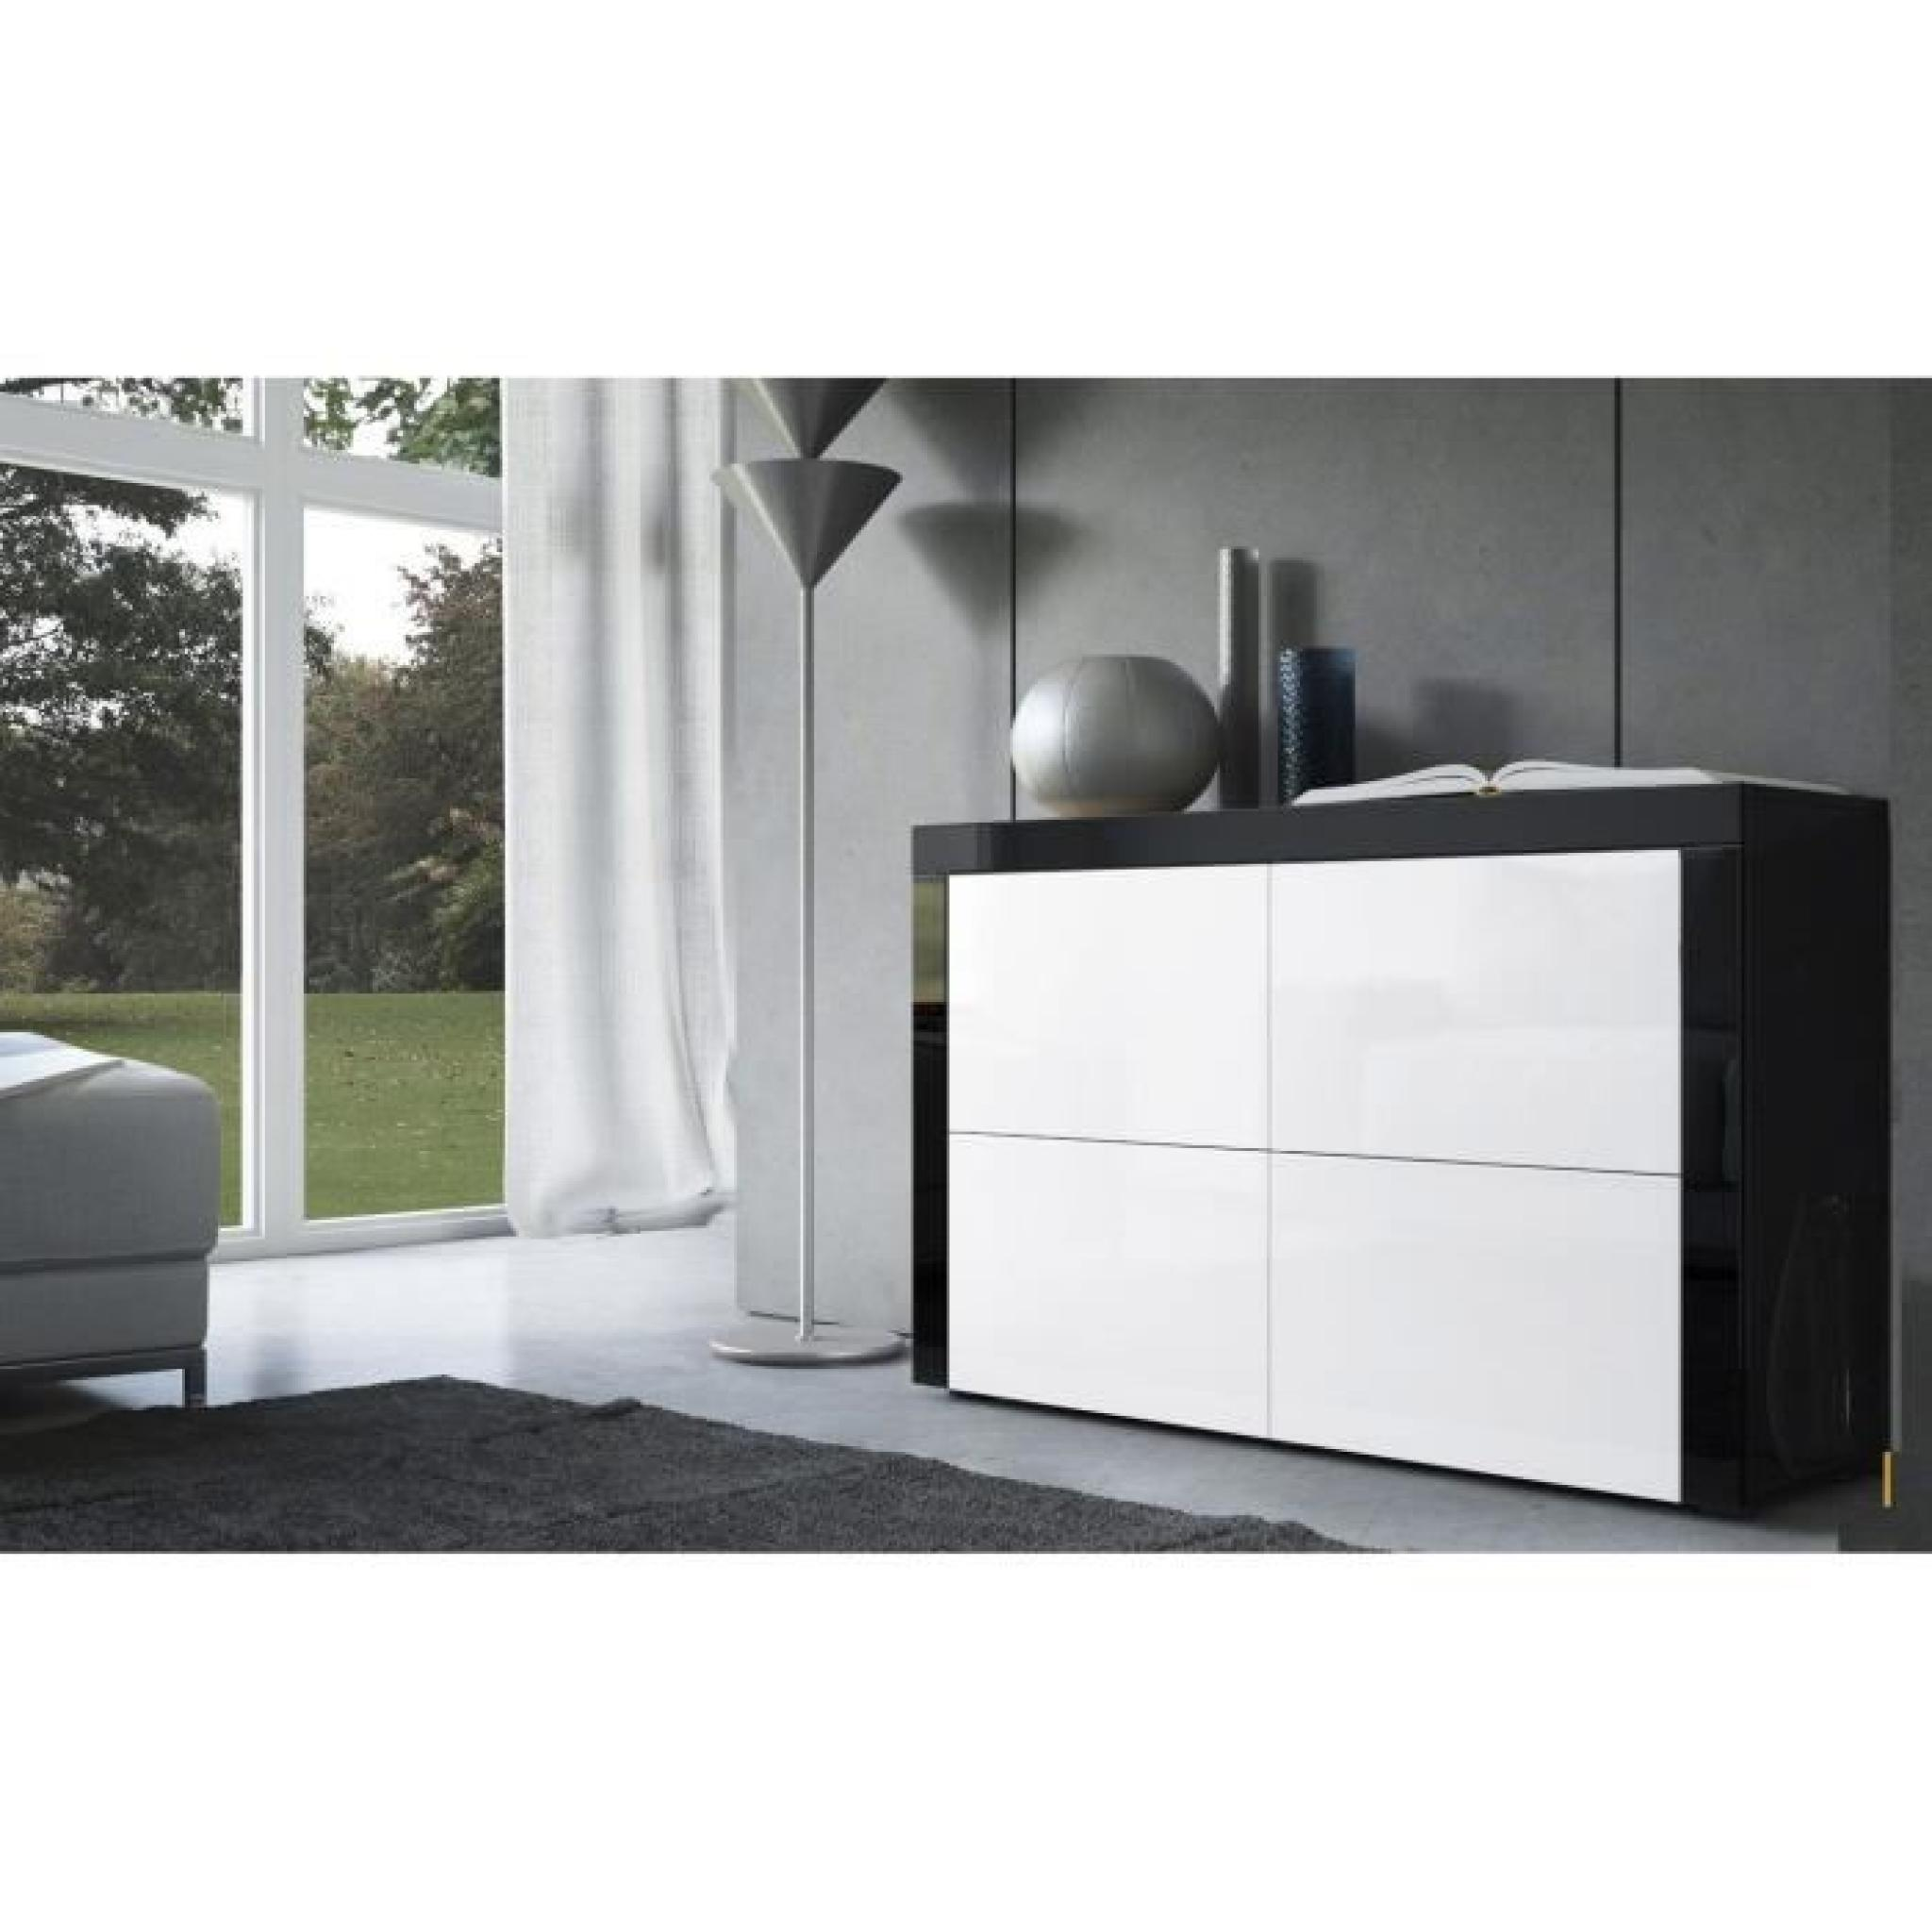 commode noire et blanc 110cm achat vente buffet pas cher couleur et. Black Bedroom Furniture Sets. Home Design Ideas